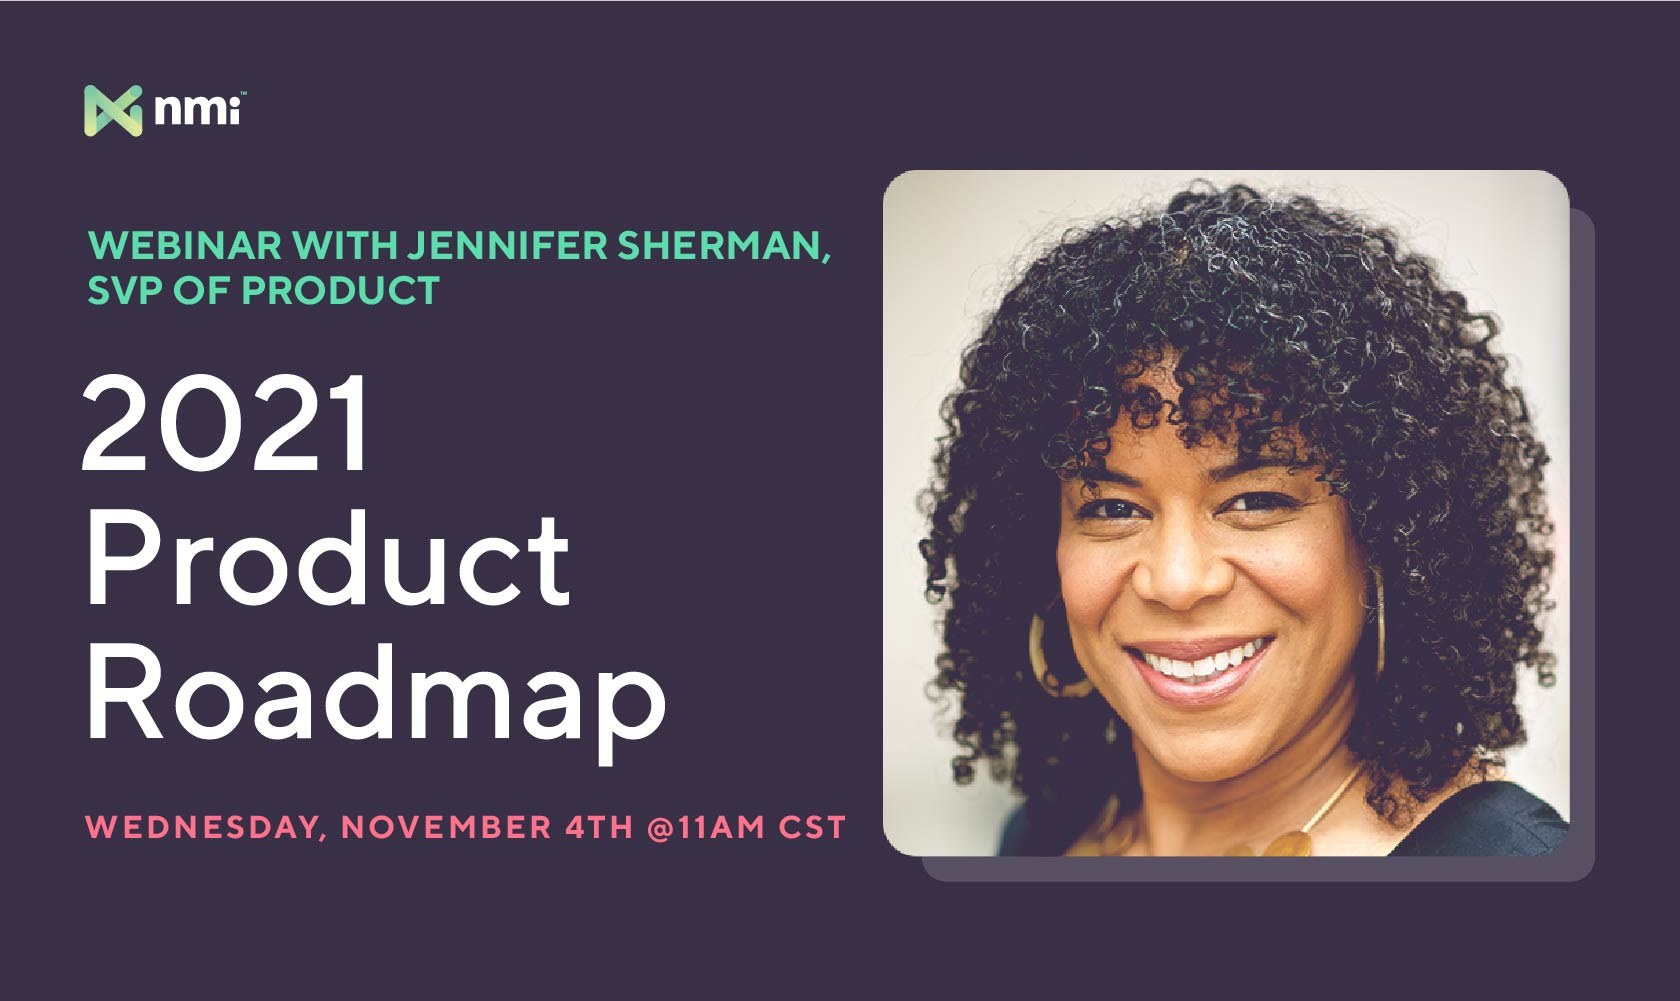 2021 Product Roadmap Webinar | NMI